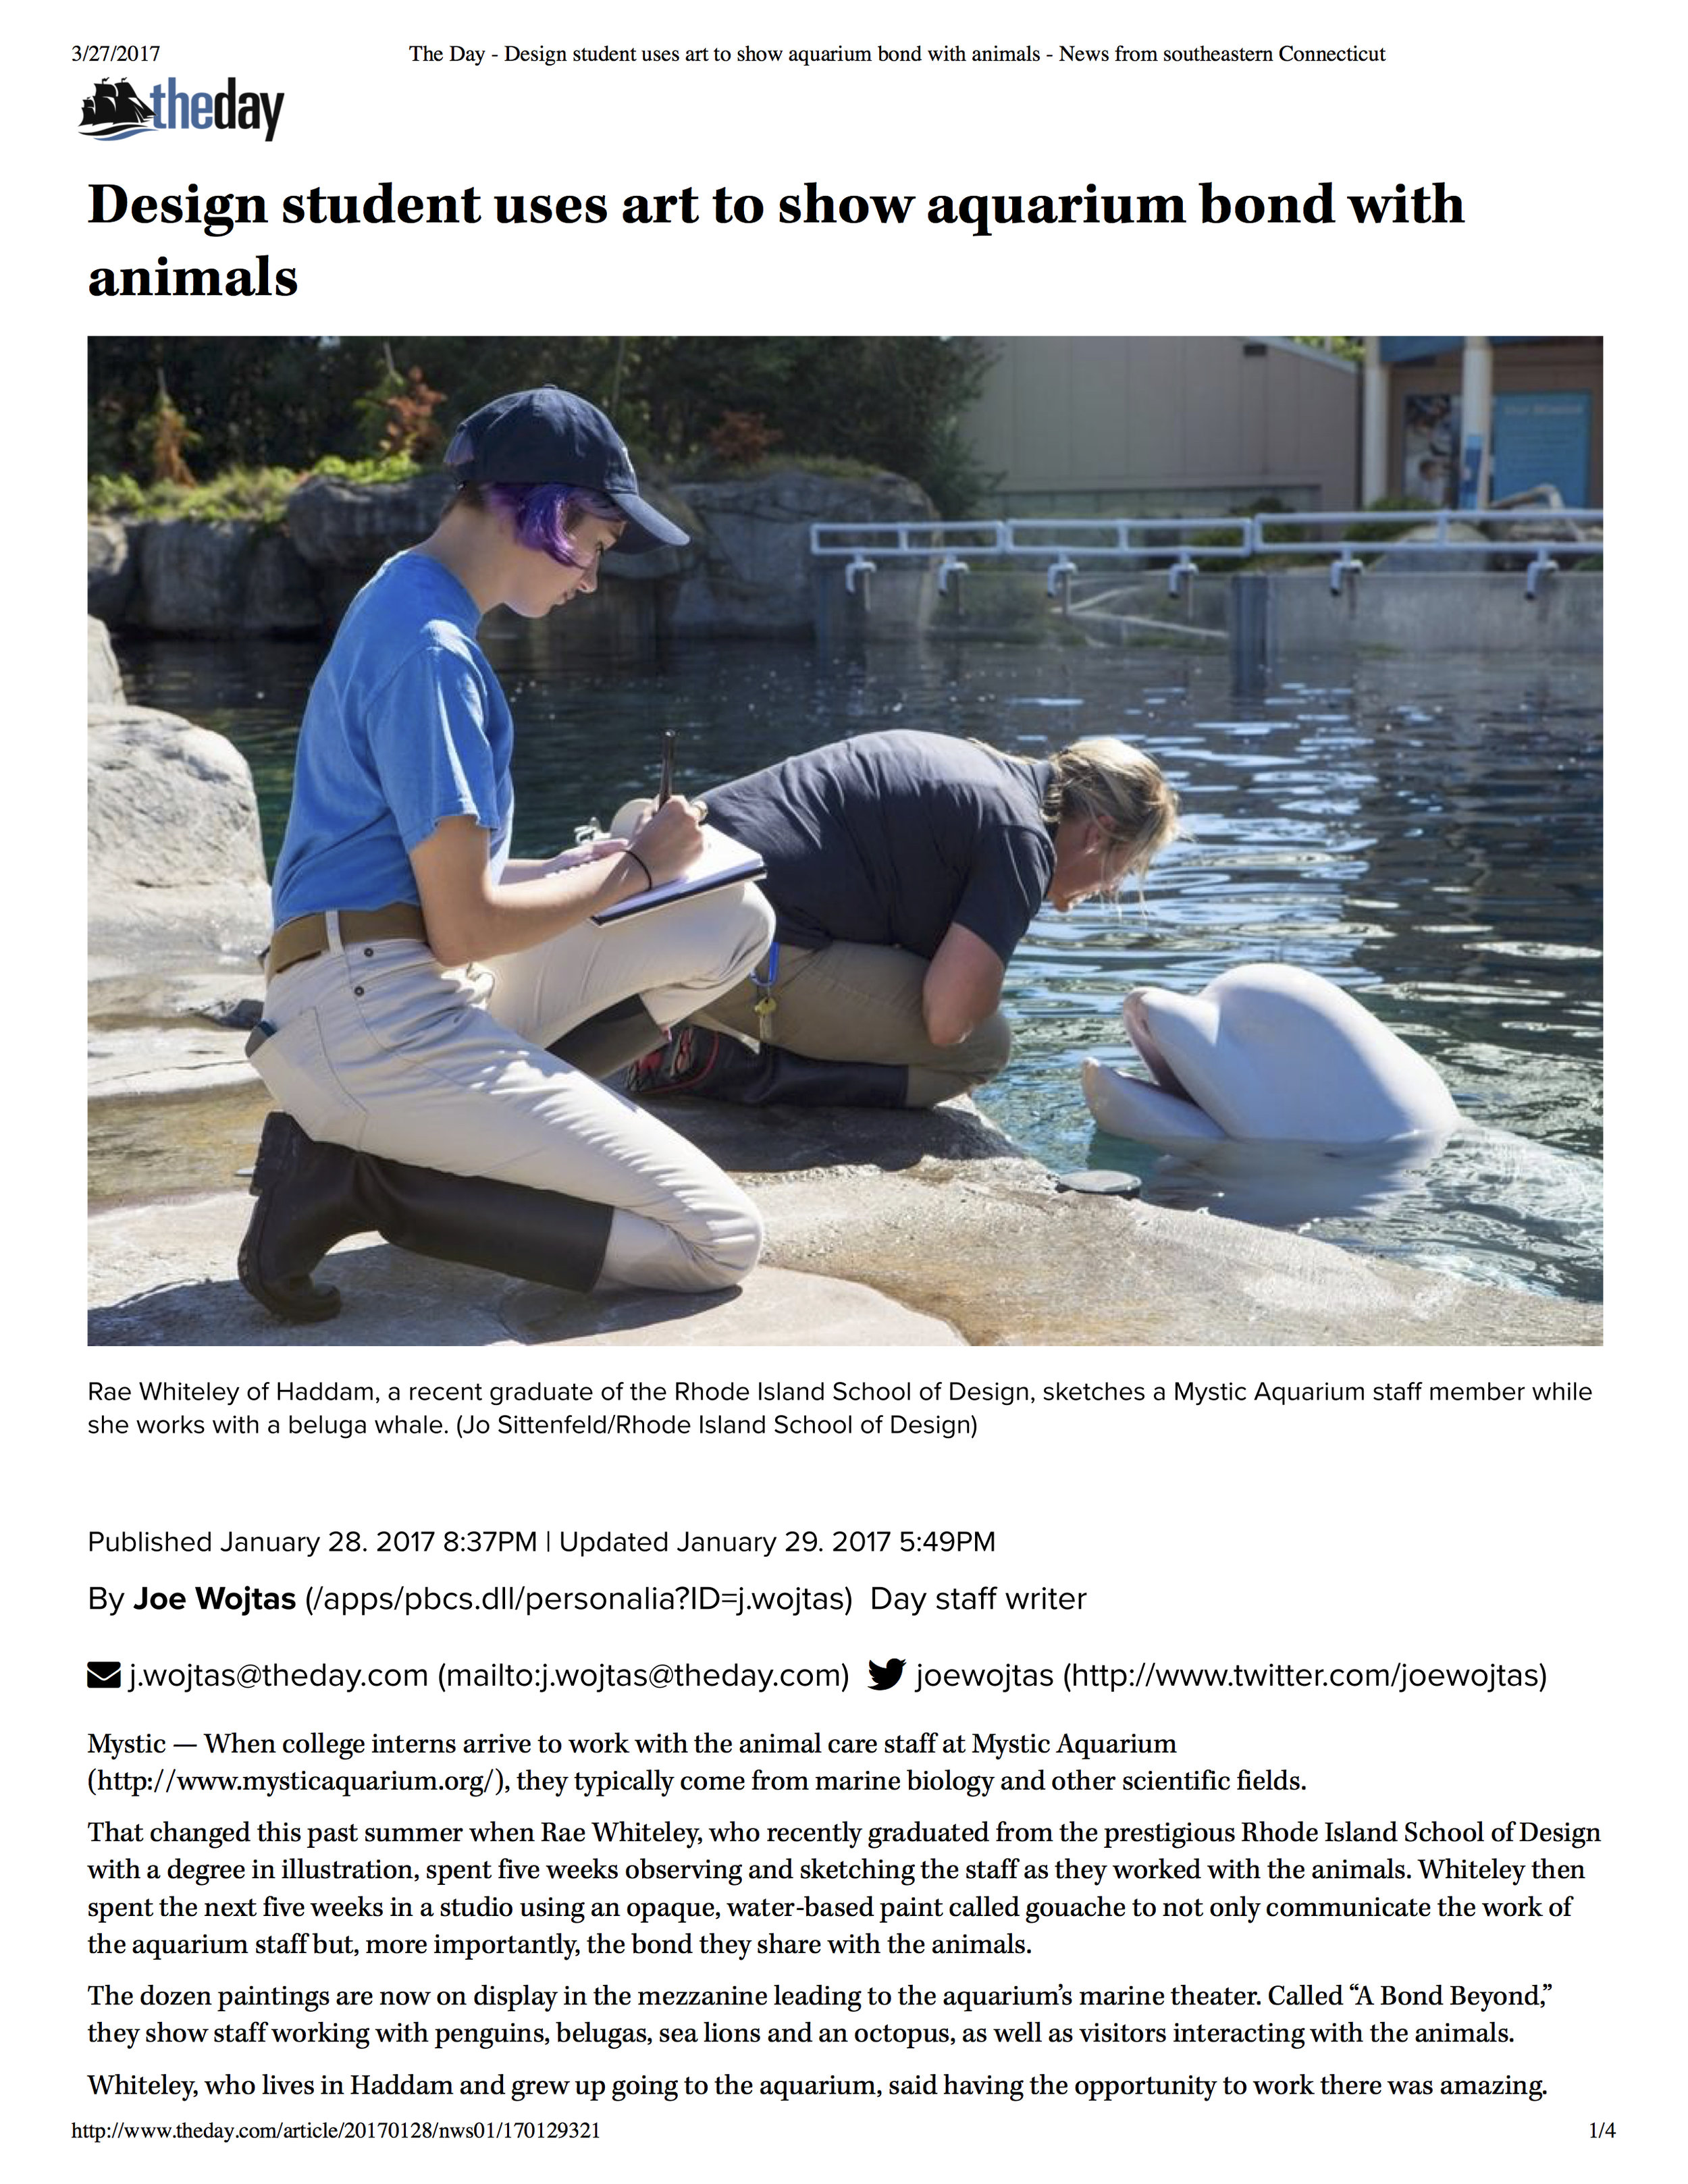 The Day - Design student uses art to show aquarium bond with animals - News from southeastern Connecticut.jpg